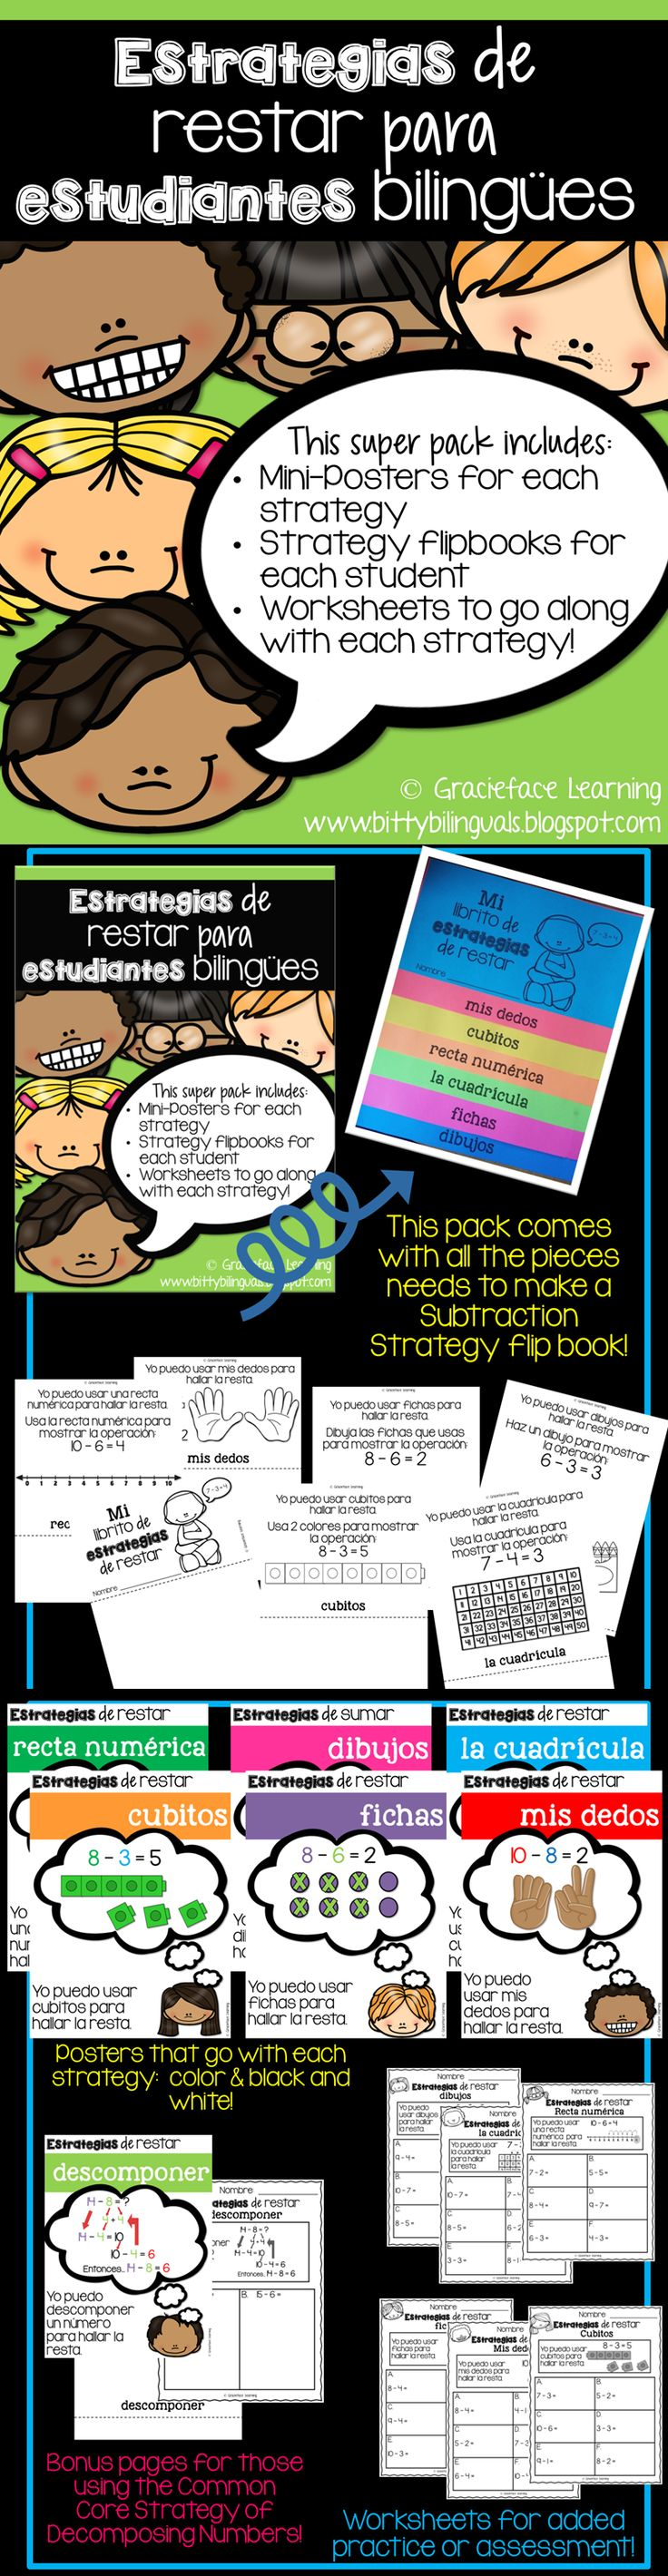 Estrategias para restar - Subtraction Strategies for bilingual students - Spanish! Includes color and black-n-white posters for each strategy, a student flipbook, and worksheets to use as homework or assessment!